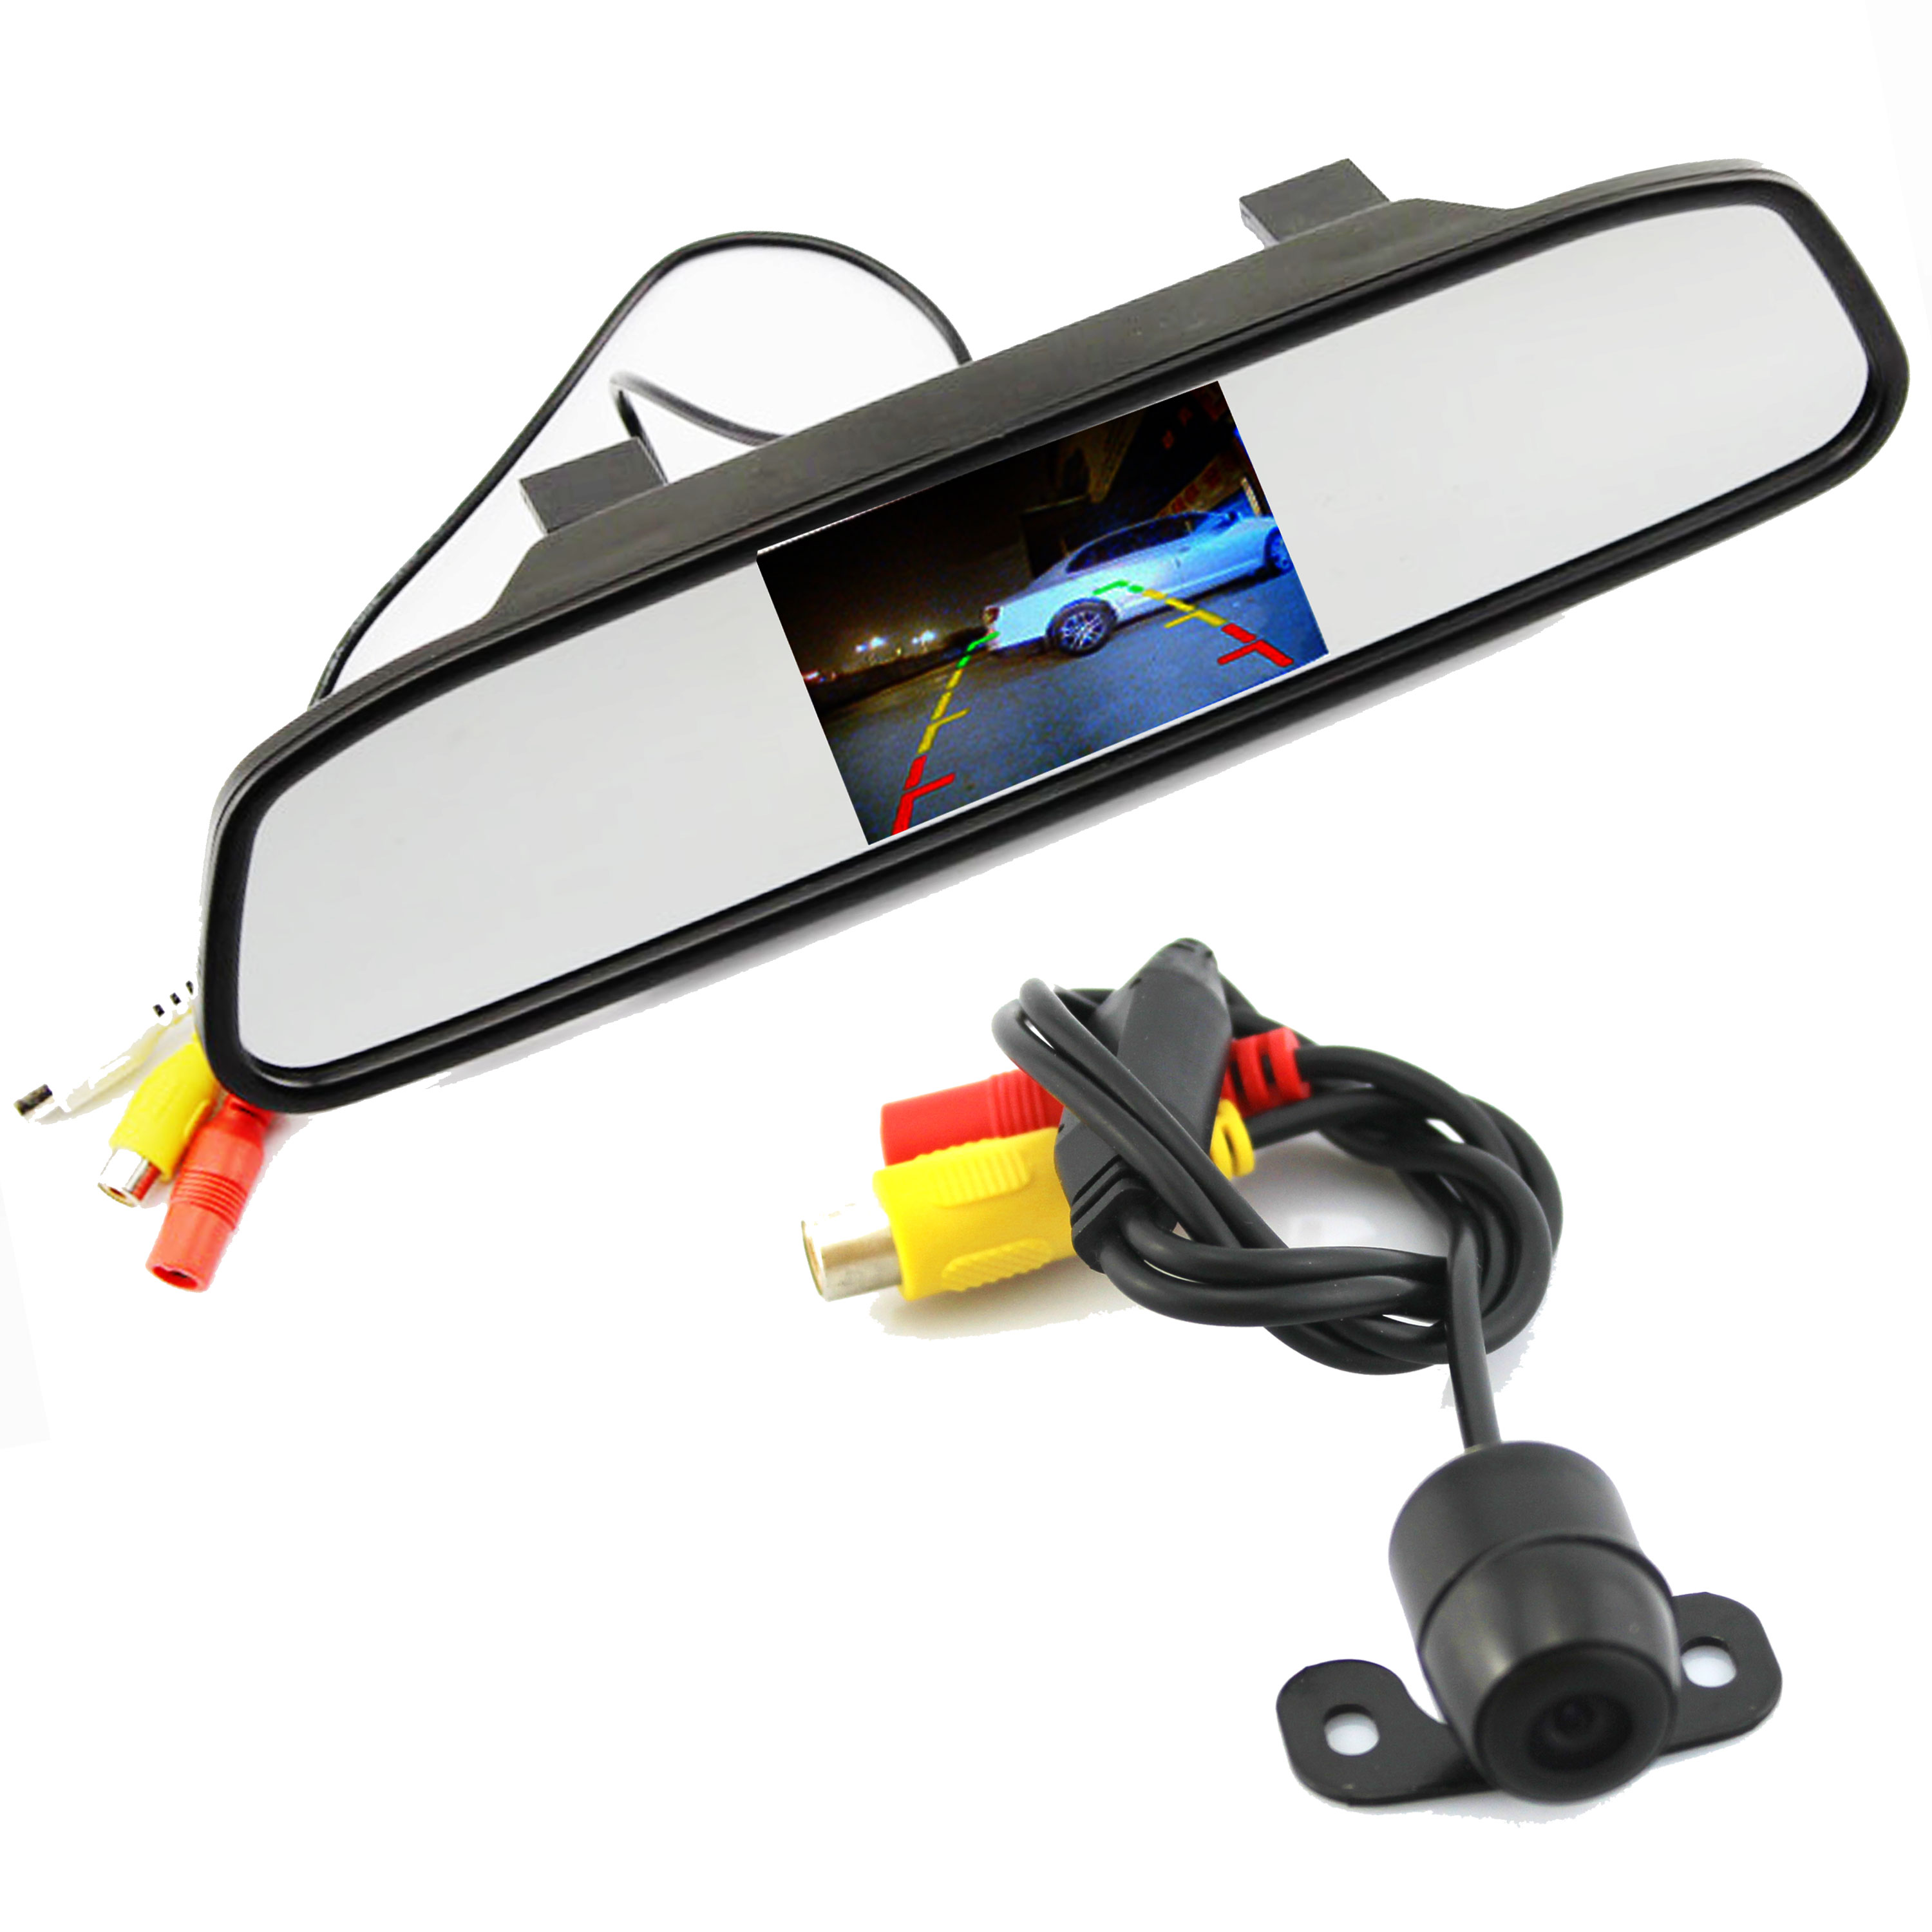 цена на Parking Assistance System 2 in 1 4.3/5 Digital TFT LCD Mirror Auto Car Parking Monitor + 170 Degrees Mini Car Rear view Camera